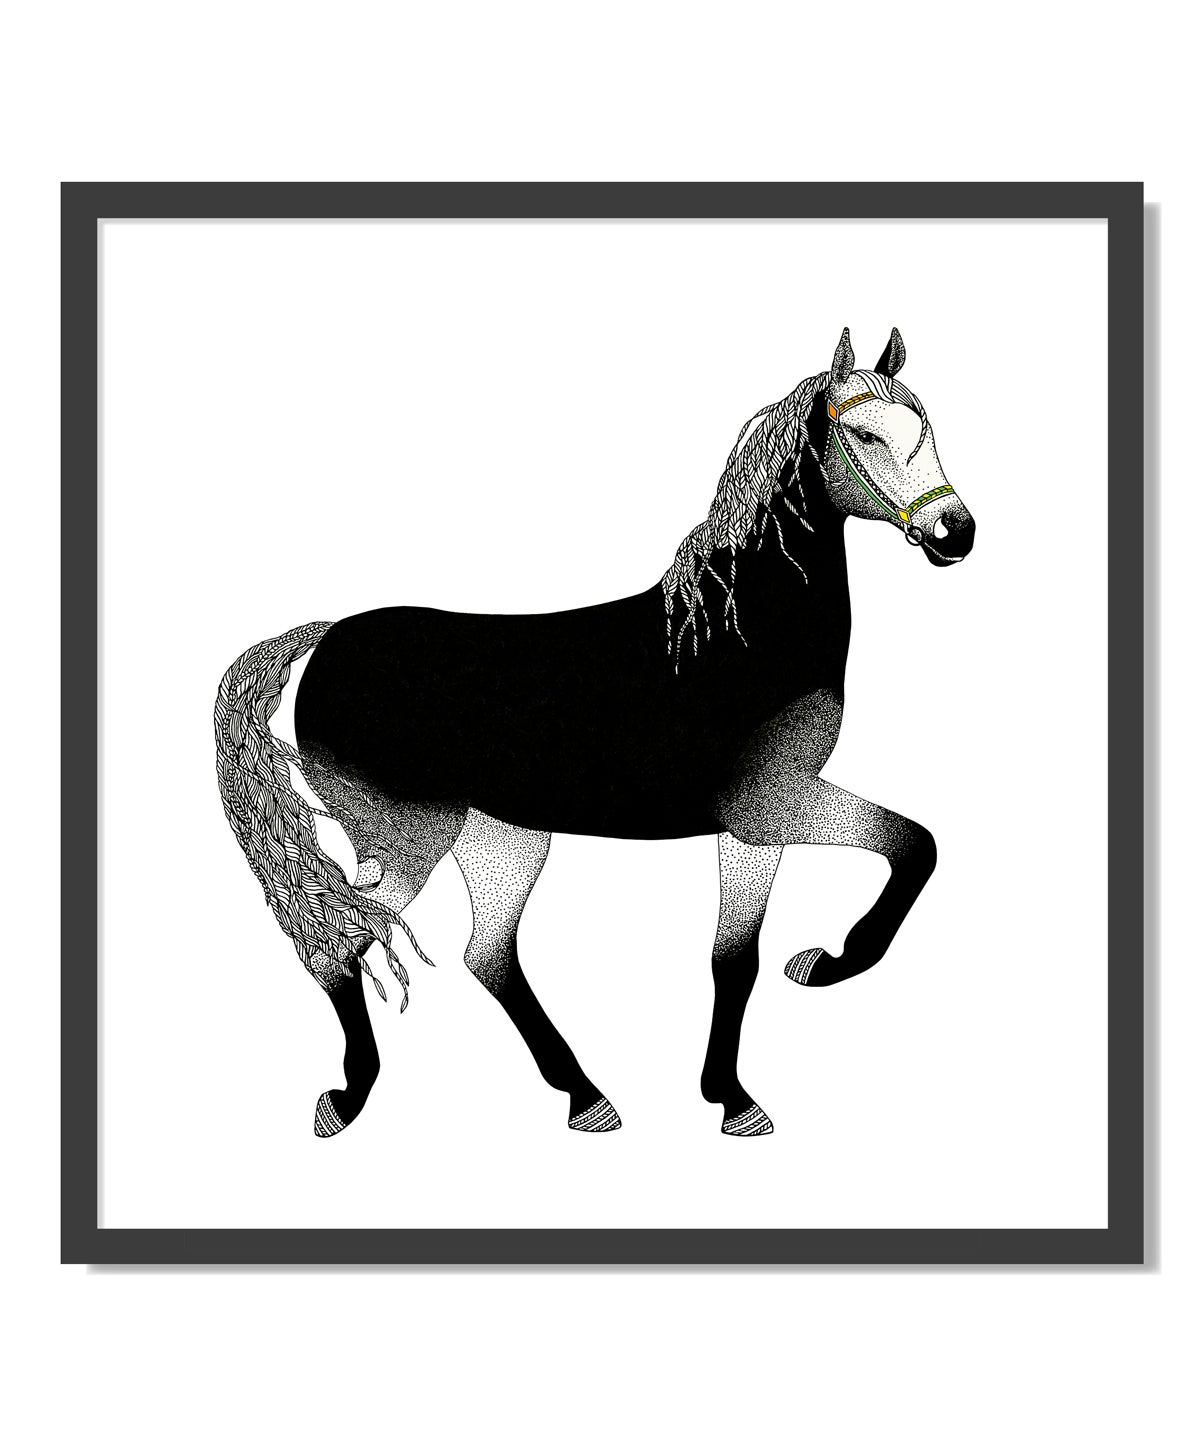 Image of Print: Black Horse